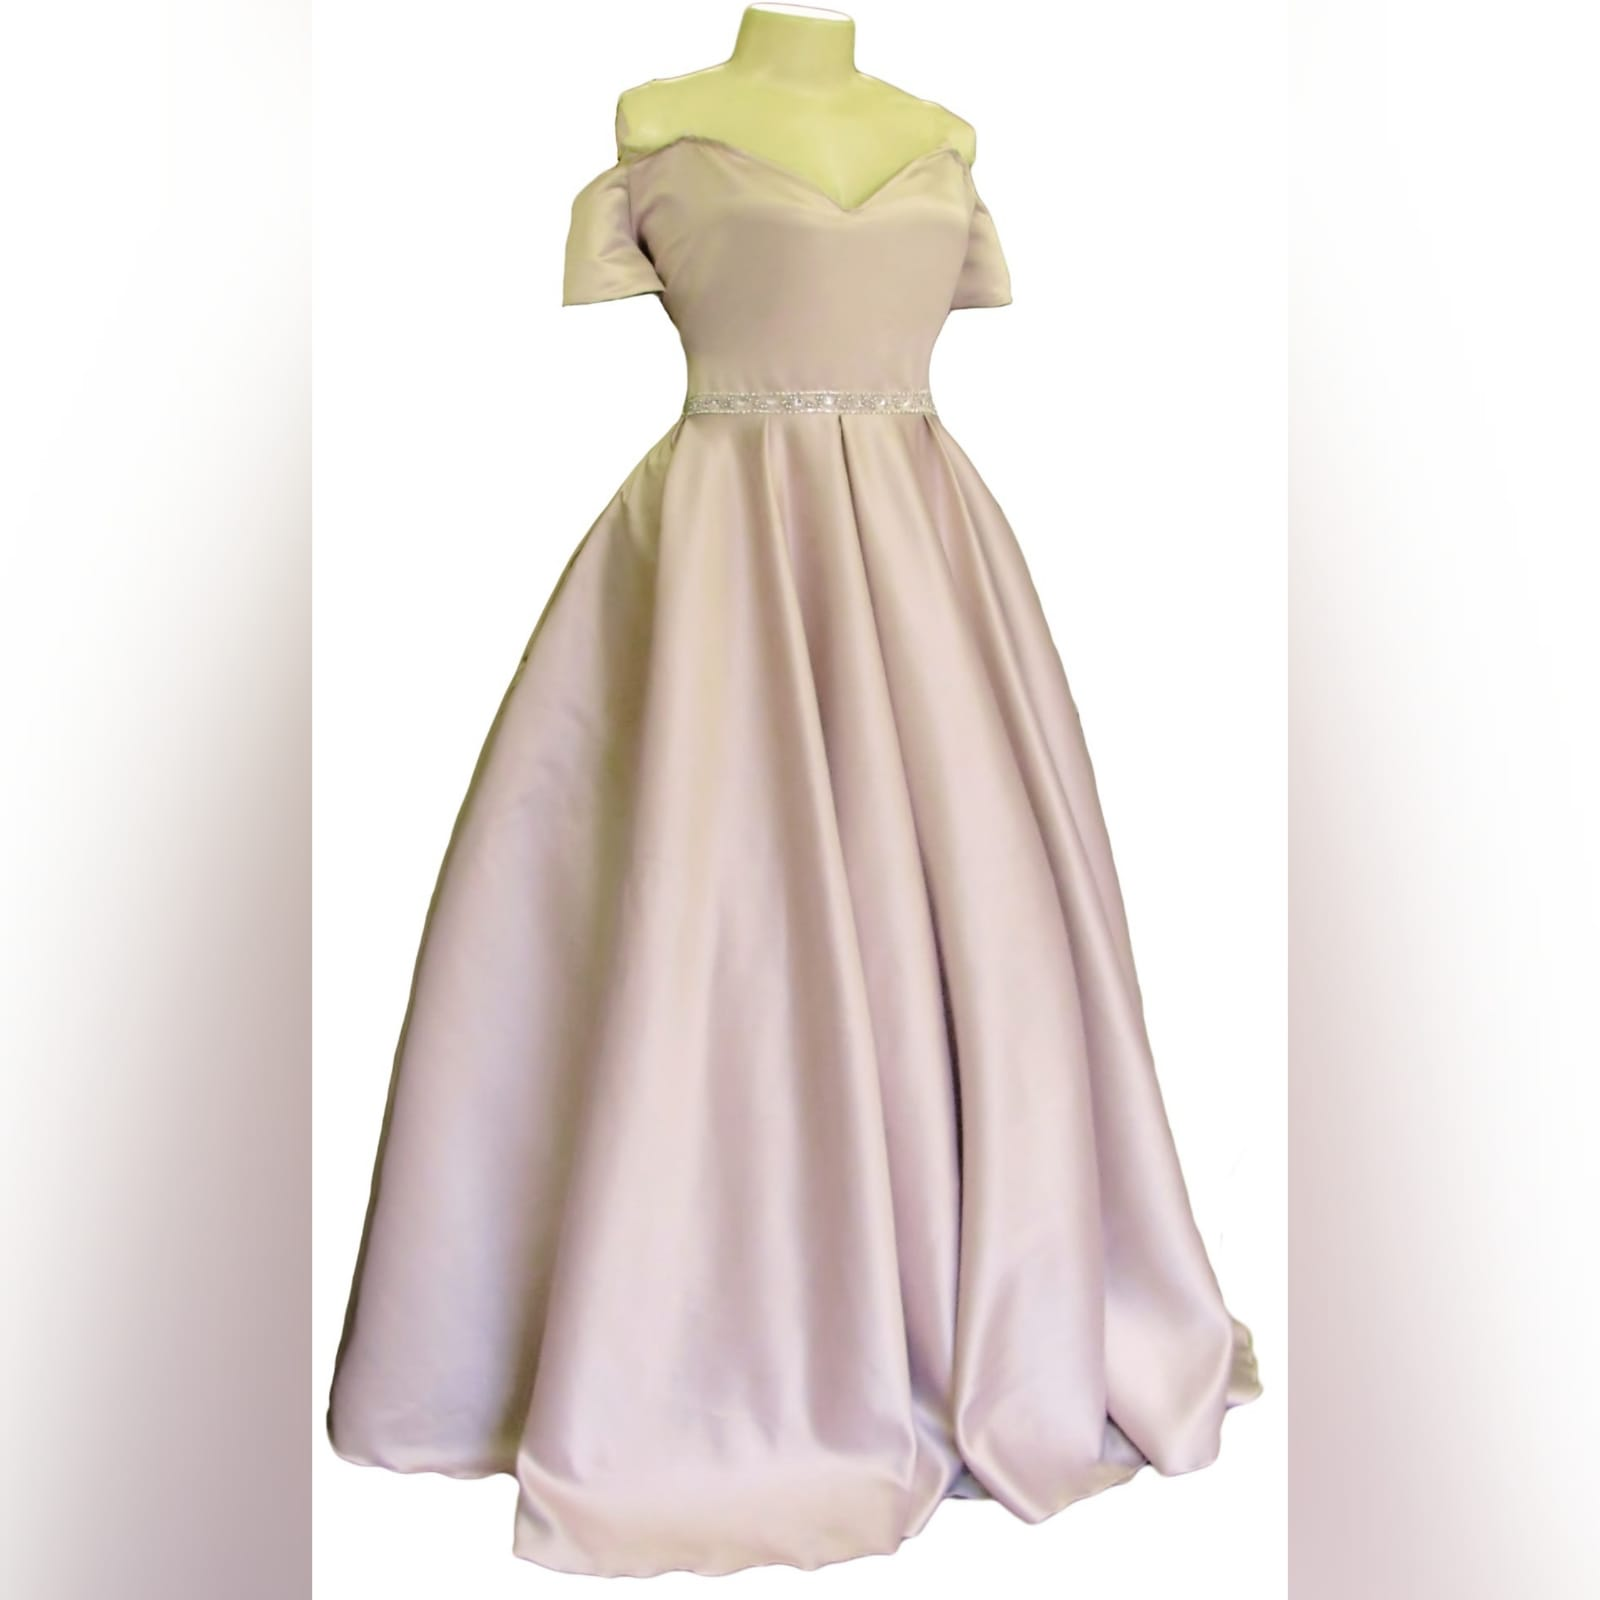 Pale pink satin plus size ceremony dress 3 pale pink satin plus size ceremony dress. Off shoulder, with a sweetheart neckline and off shoulder short sleeves. With a beaded waistline belt effect.